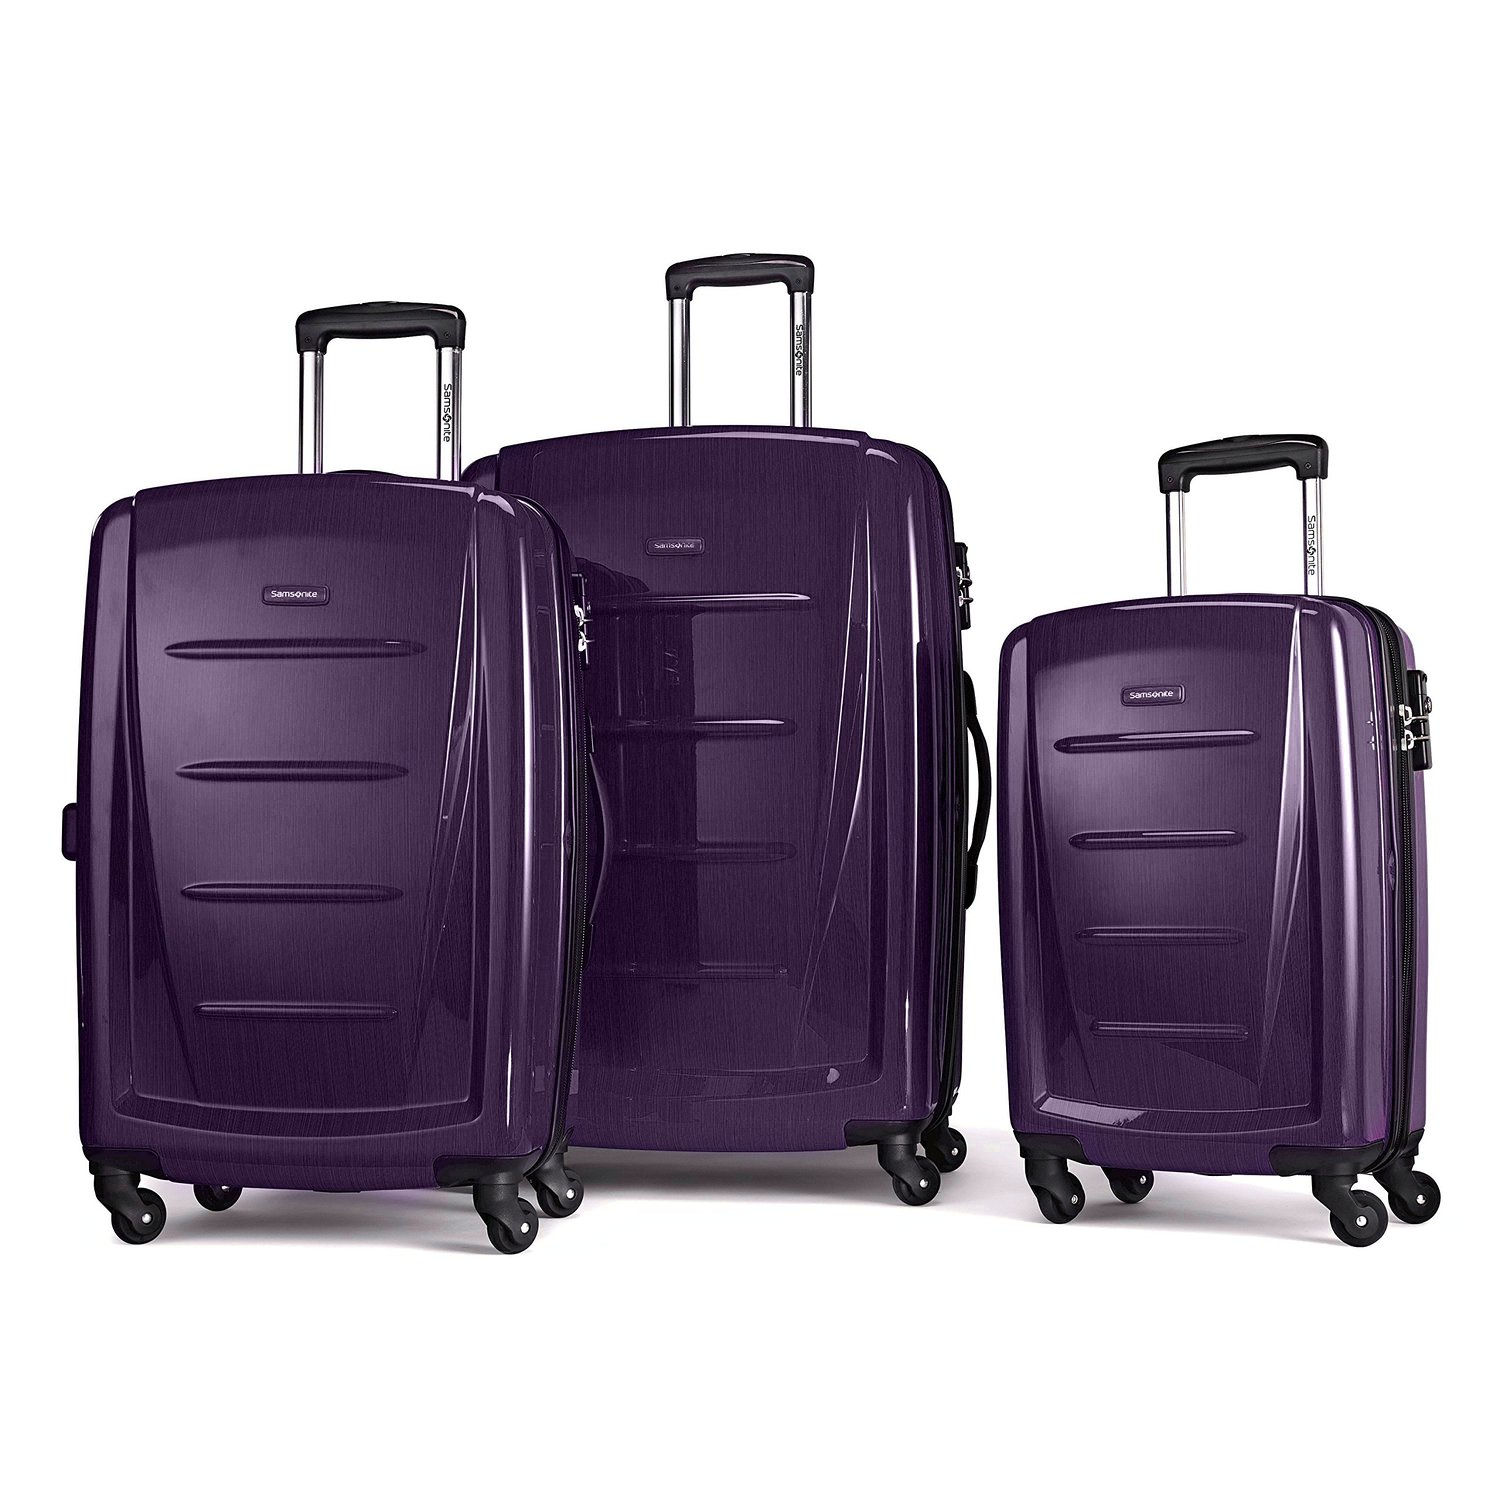 WE OFFER A HUGE CHOICE OF QUALITY BRANDS AT LOW PRICES. Based in Swanley, Kent, The Luggage UK is one of the UK's largest independent luggage retailers and now offers its comprehensive range of Antler suitcases, Samsonite luggage and Revelation travel bags and cases online through rythloarubbpo.ml. Whenever you're planning to travel, you'll find this website offers a huge choice of .